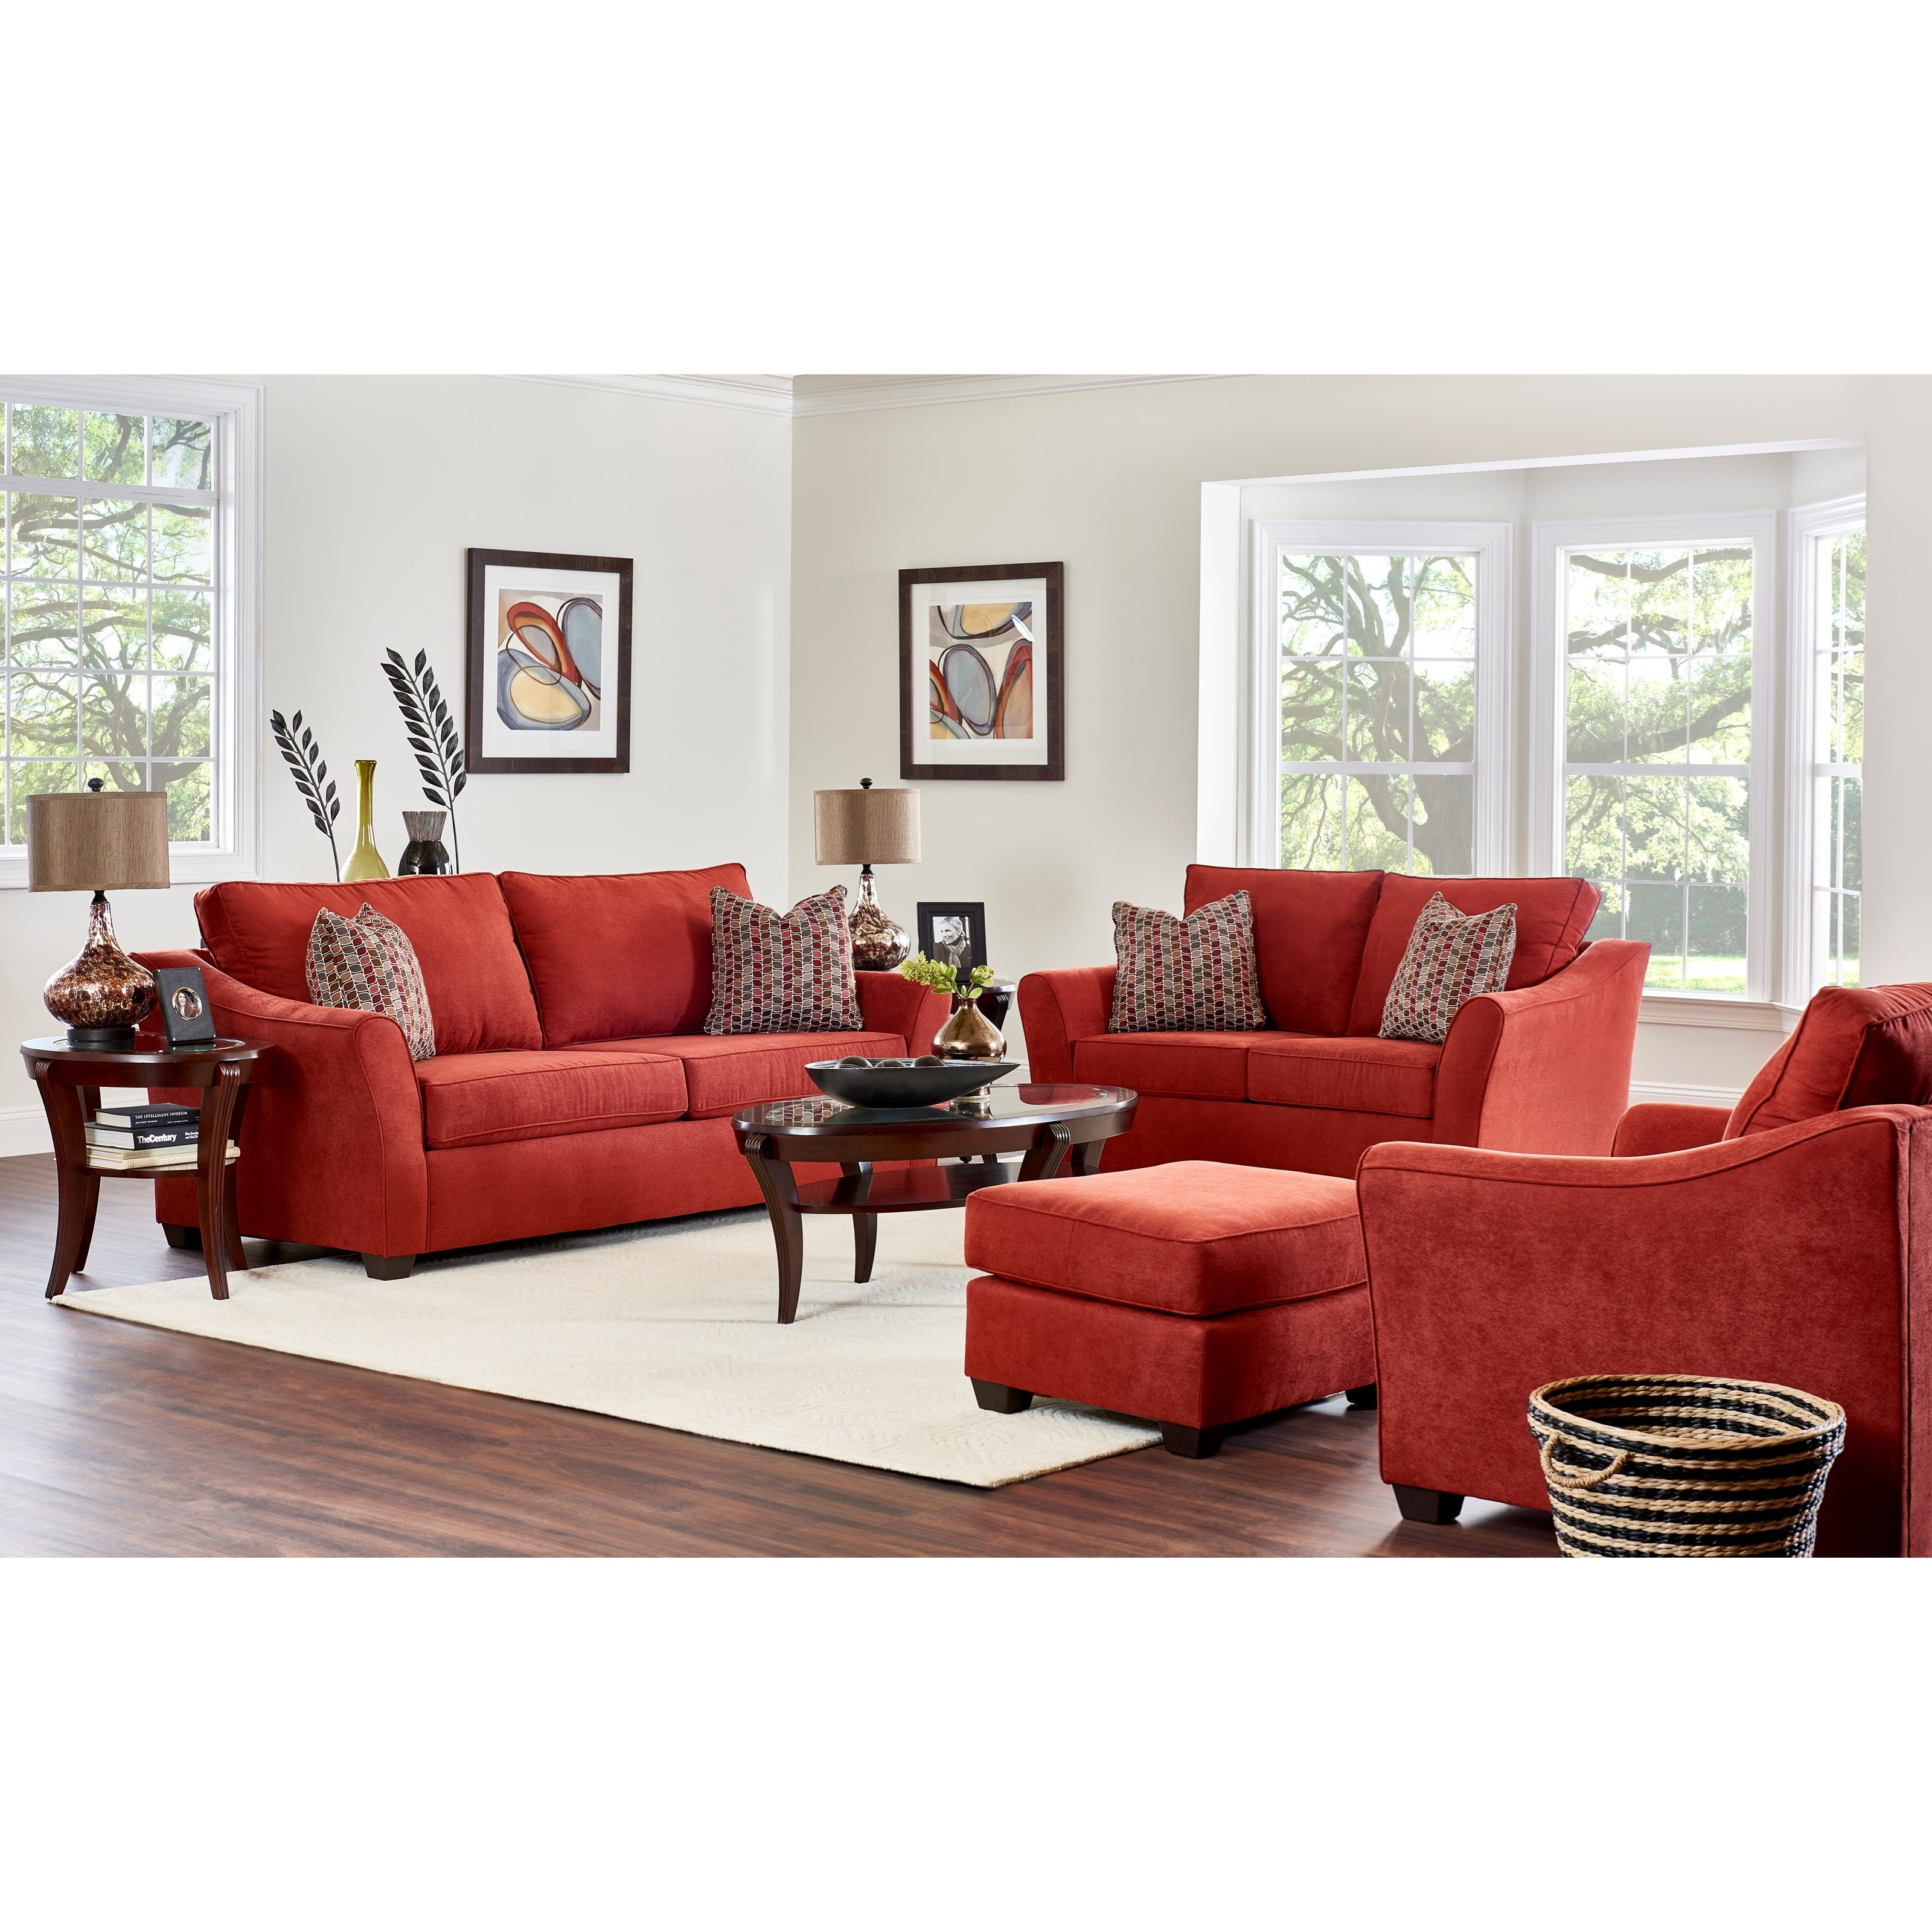 Klaussner Linville Living Room Group - Item Number: K80400 Living Room Group 5